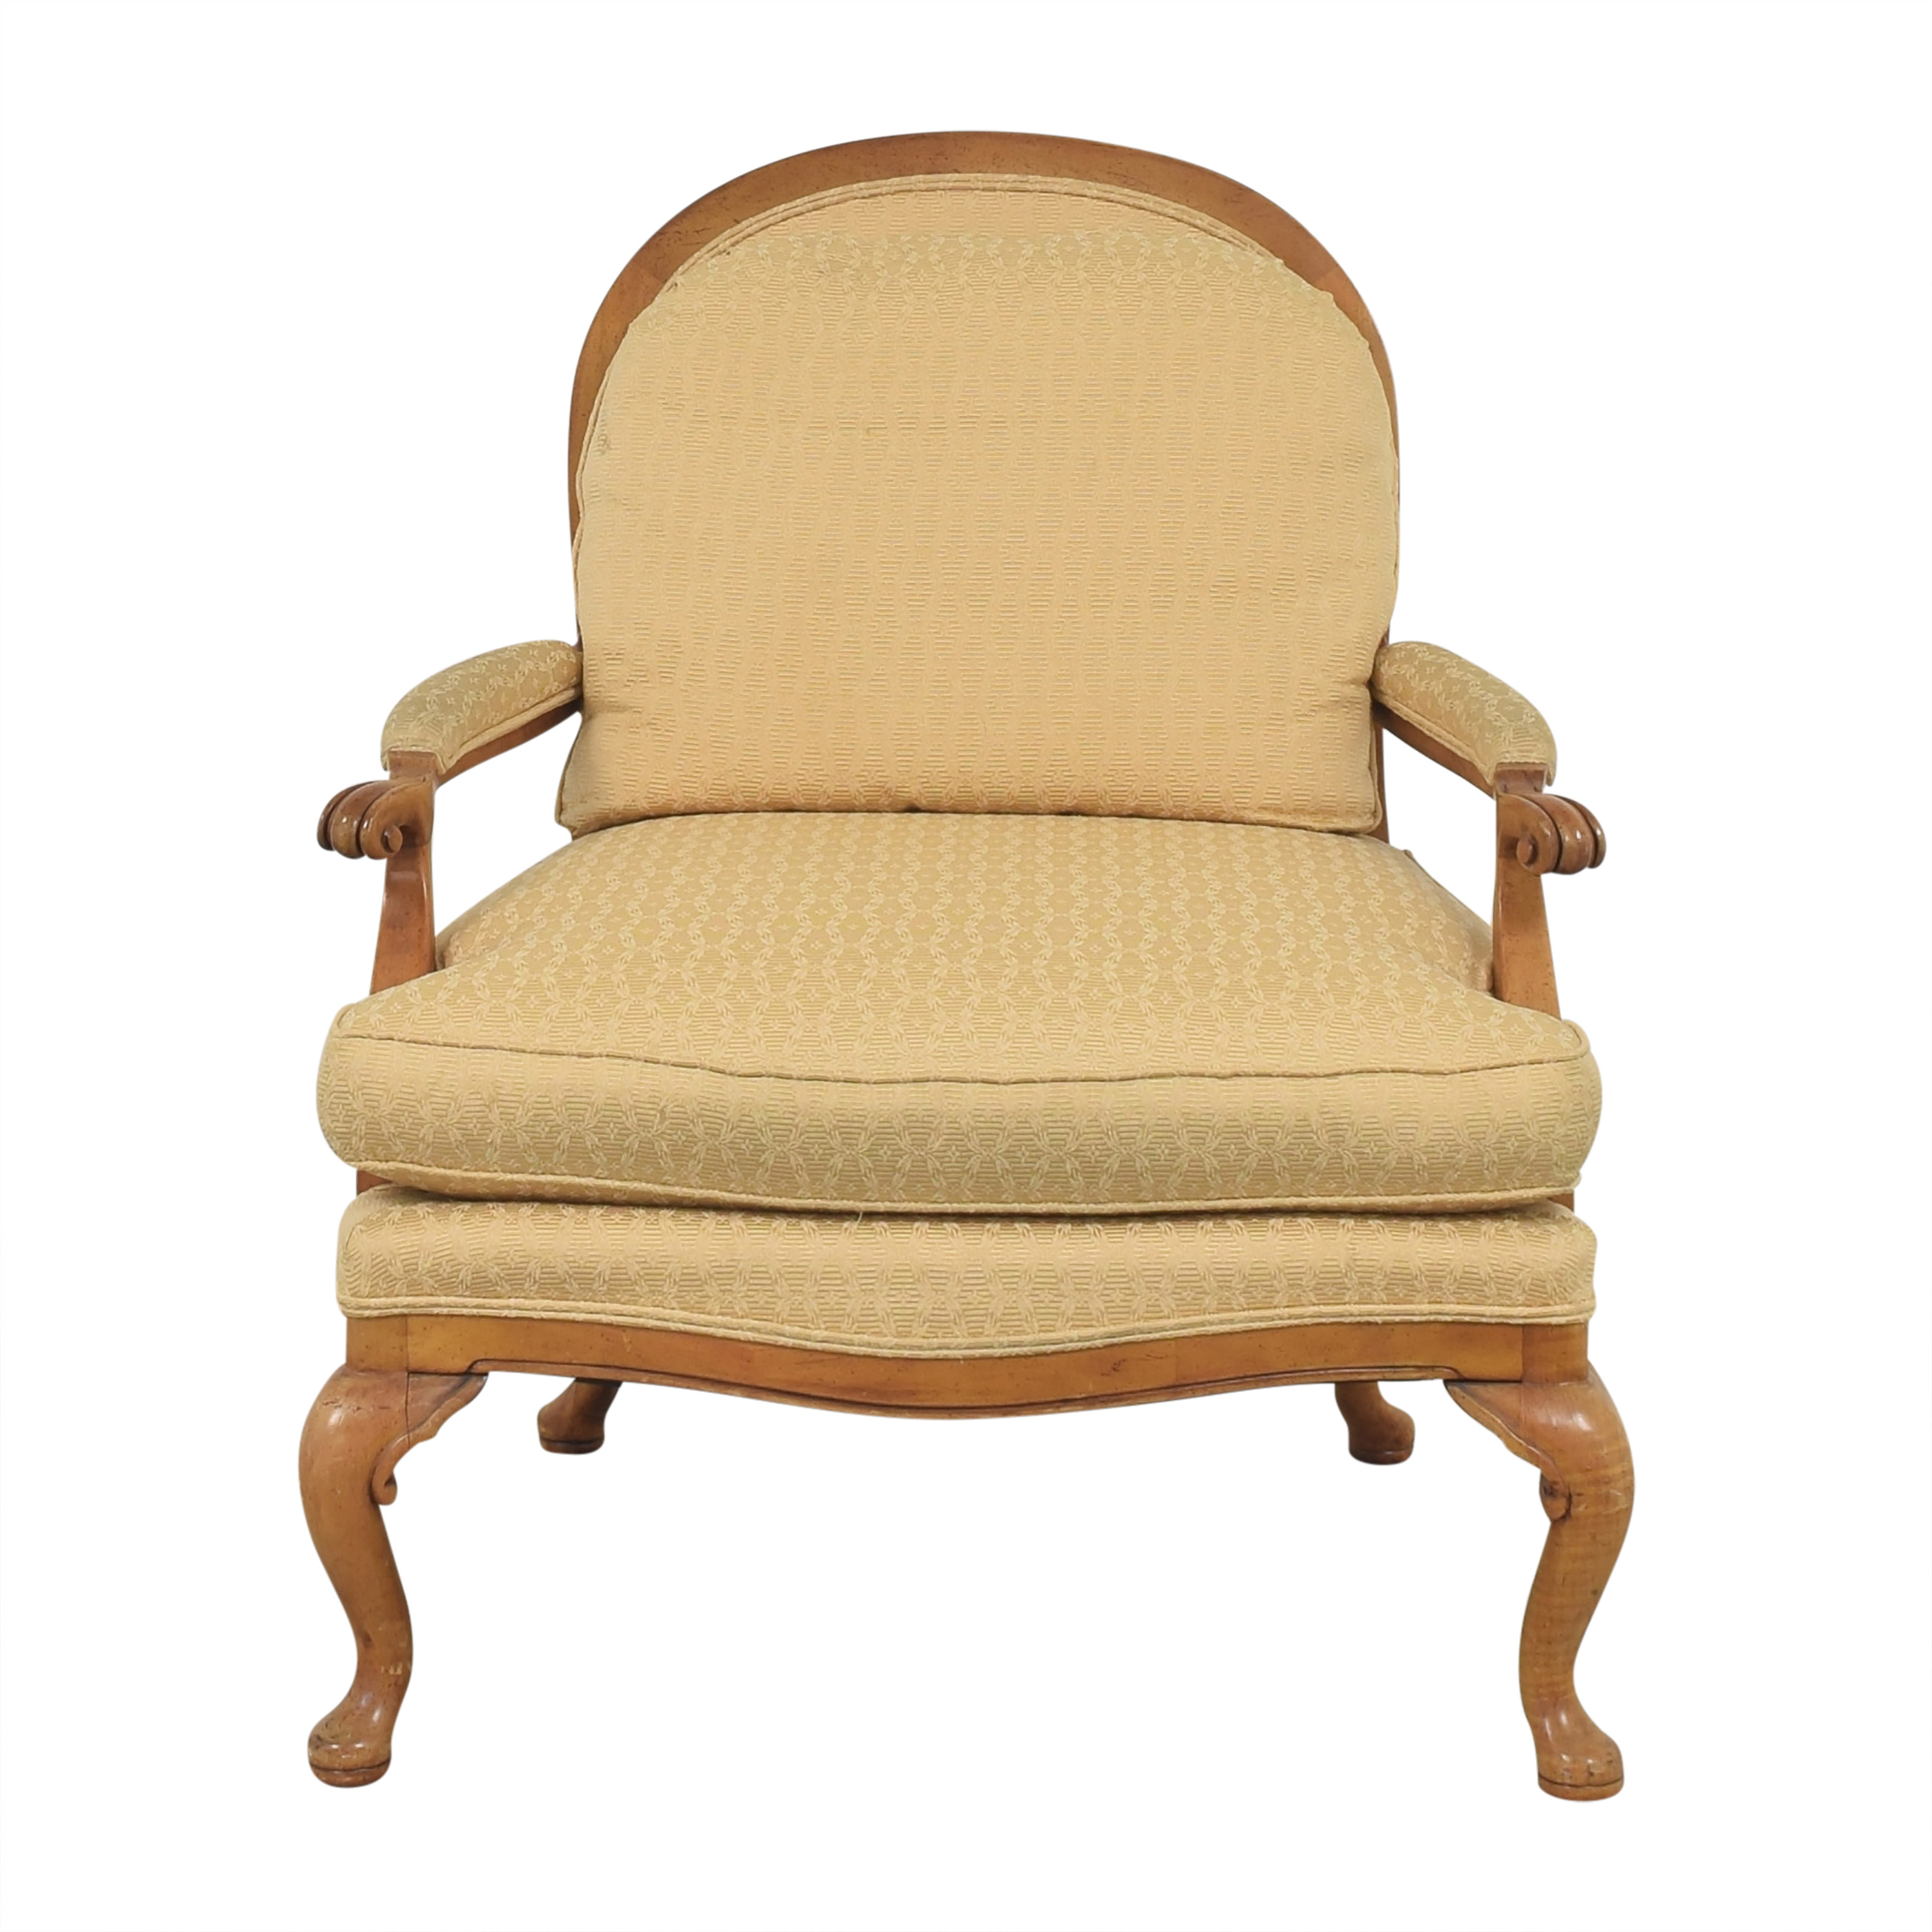 buy Highland House Furniture Highland House Accent Fauteuil Chair online